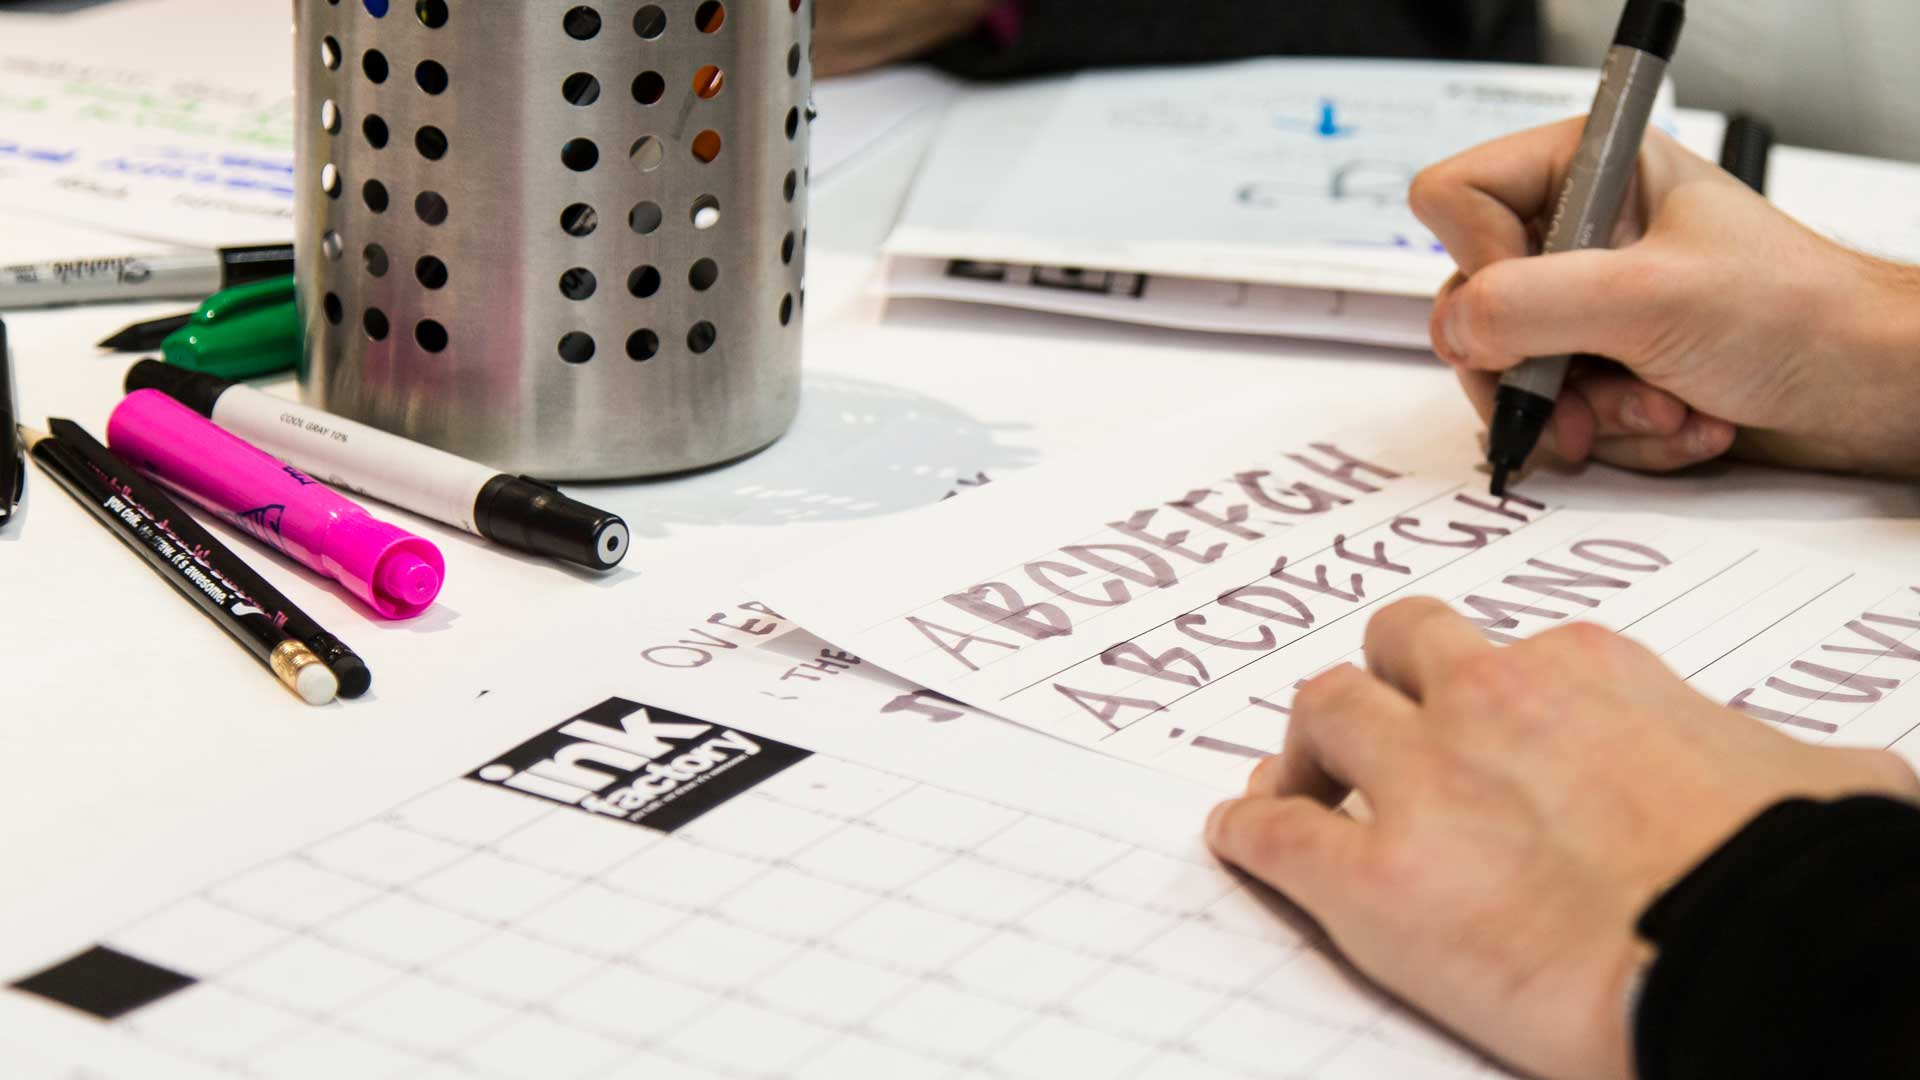 A student practices hand lettering in a visual note workshop